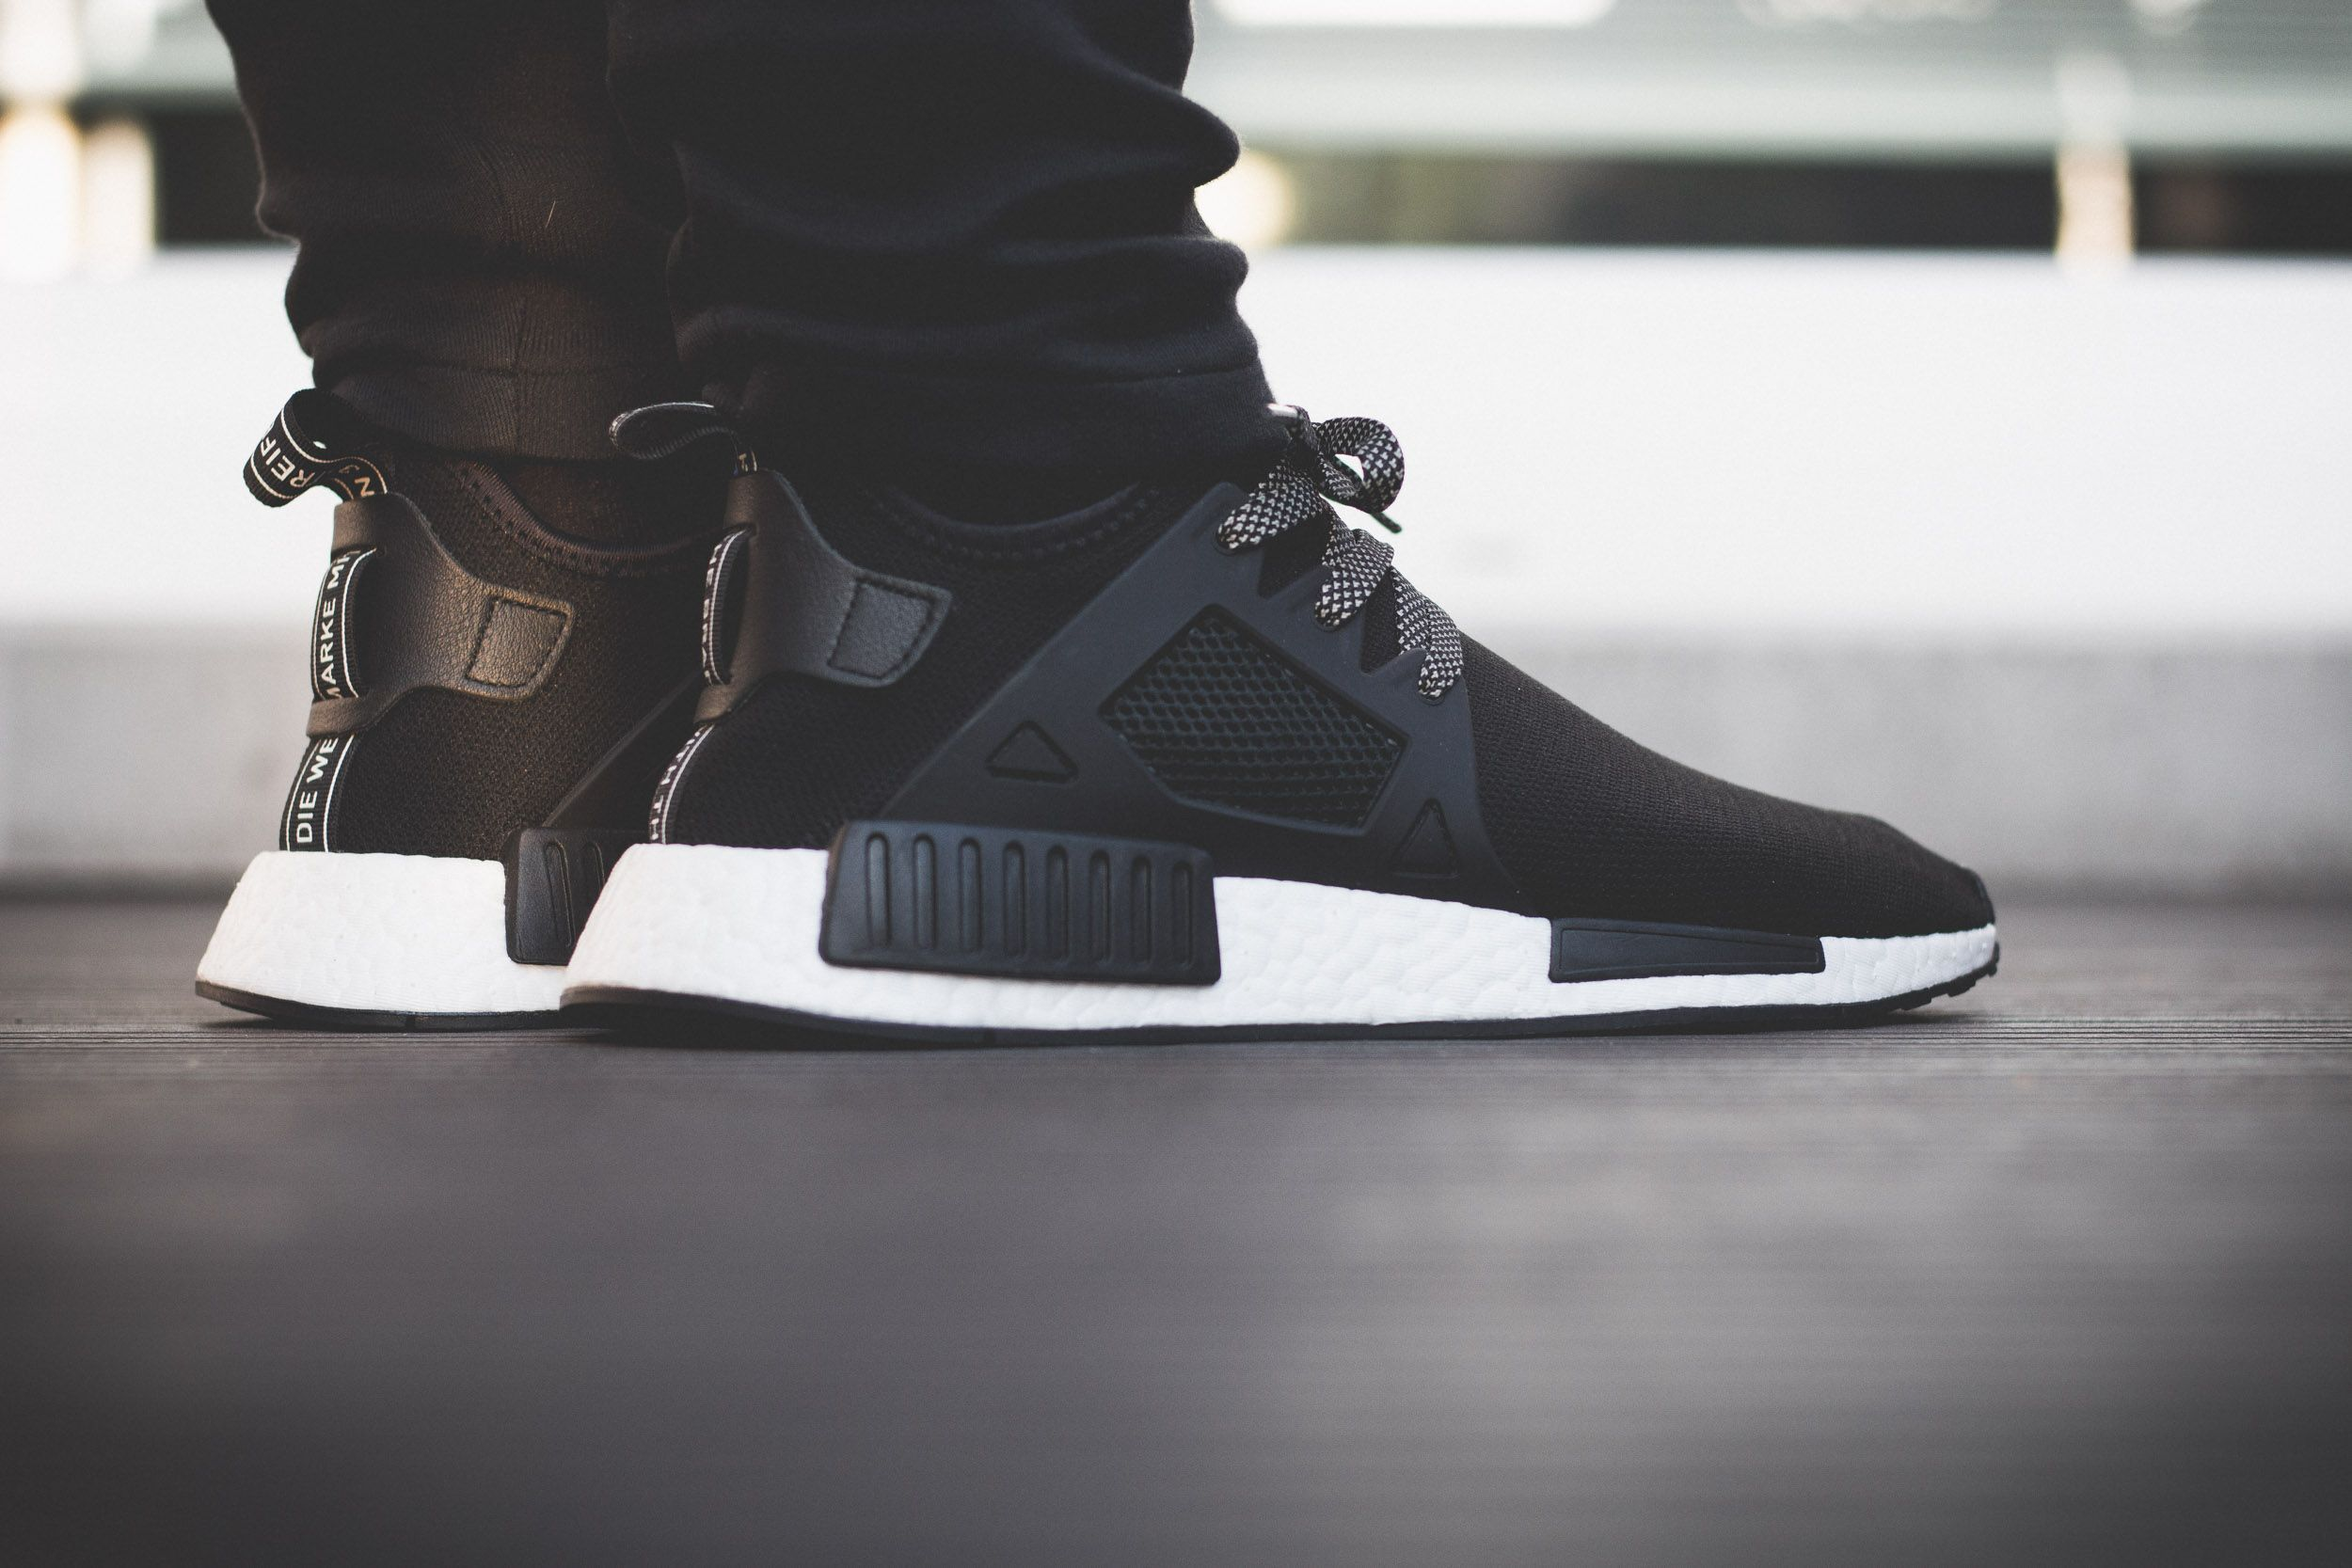 competitive price 564bc a300f adidas NMD XR1 – Black / White On Feet, #adidas ...